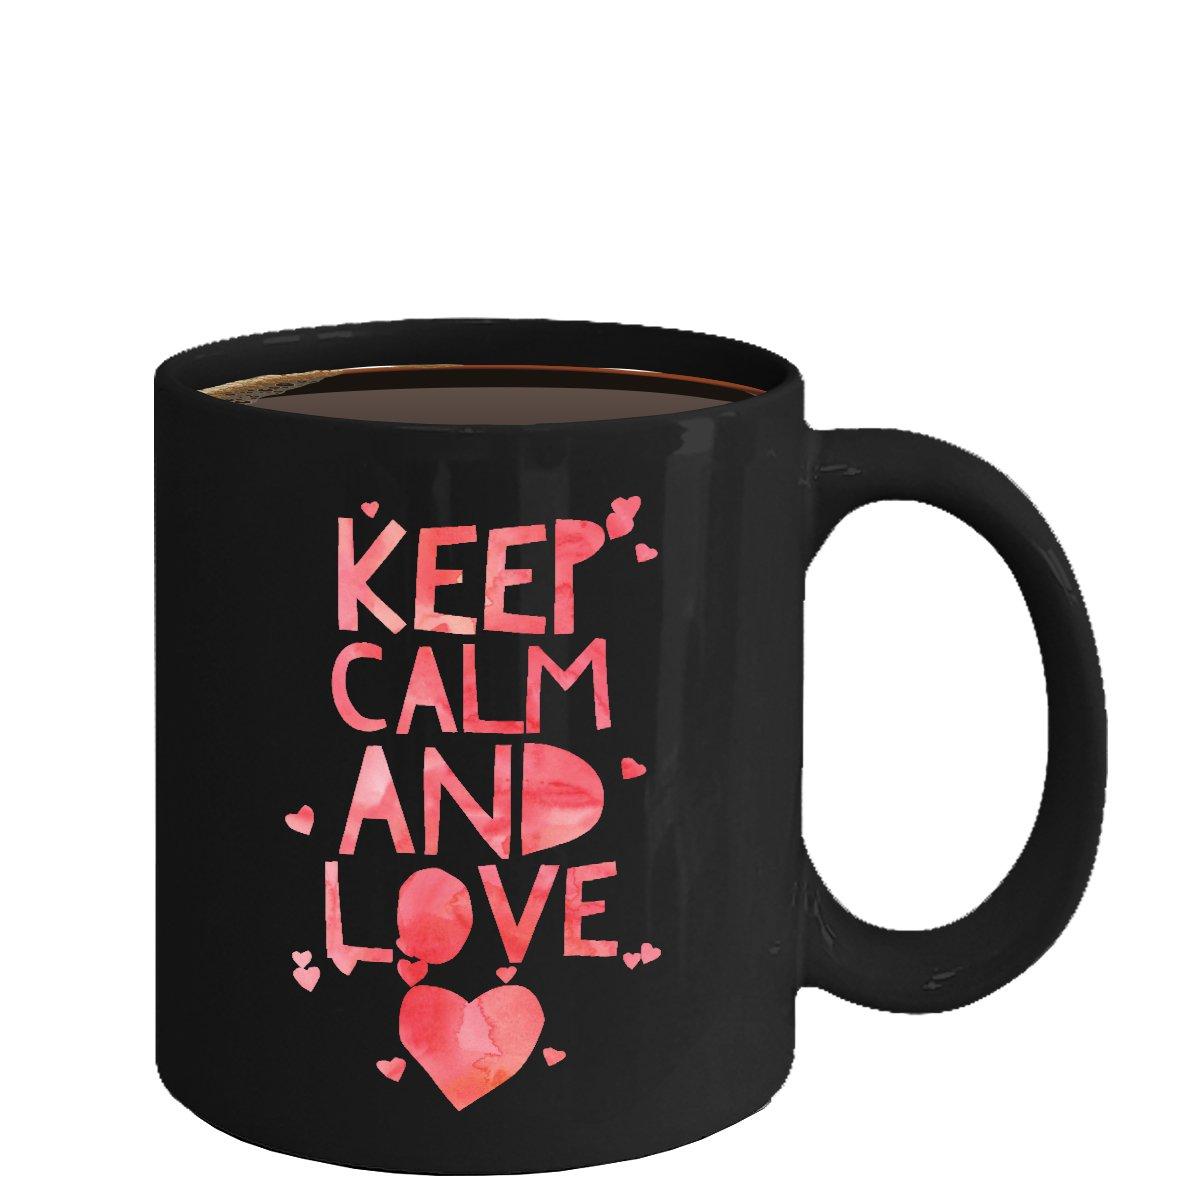 Love Ceramic Coffee Mug - Keep Calm and Love - Cute Large Cup (Black) - Best Gift for Men, Women